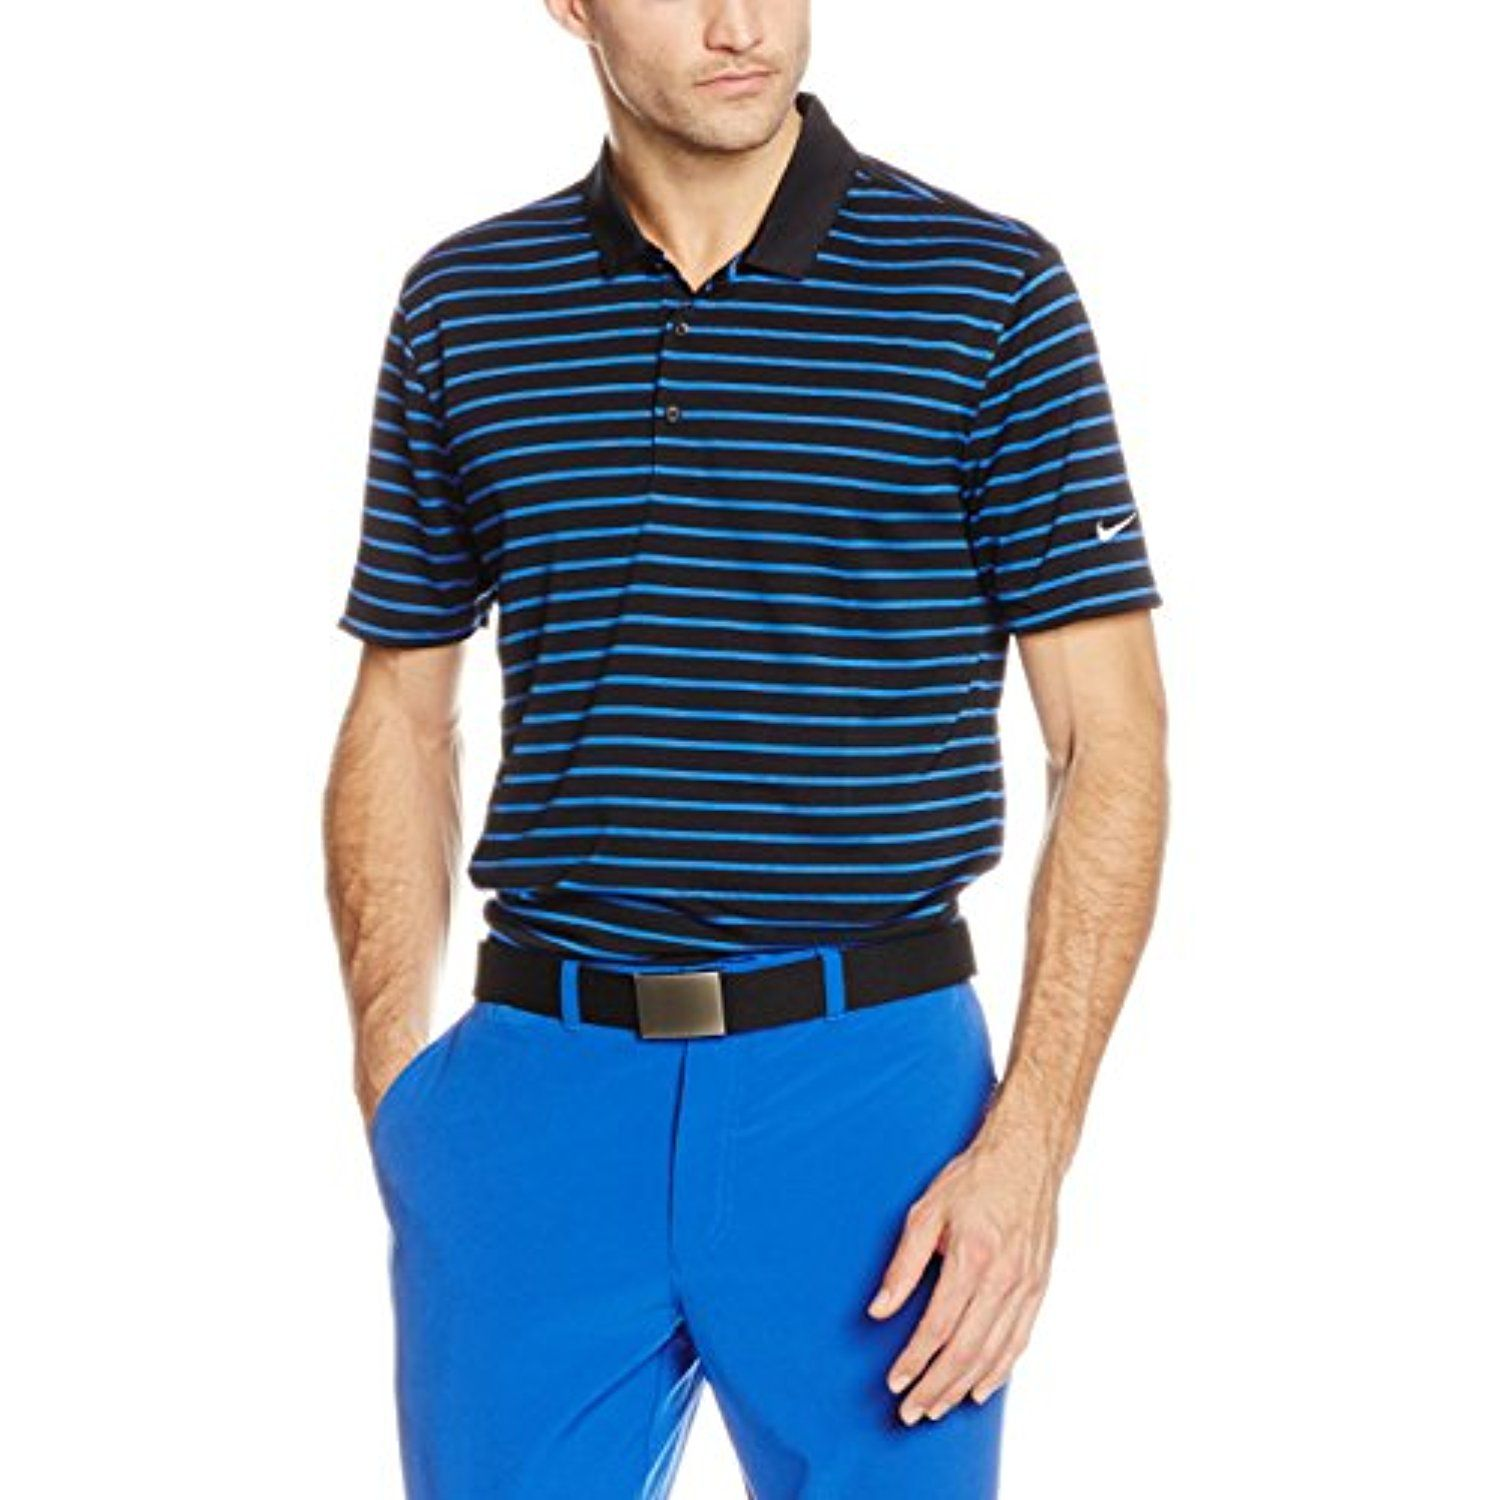 6ebbab70 Dallas Cowboys Nike Golf Icon Stripe Polo >>> Click on the image for  additional details. (This is an affiliate link) #Clothing